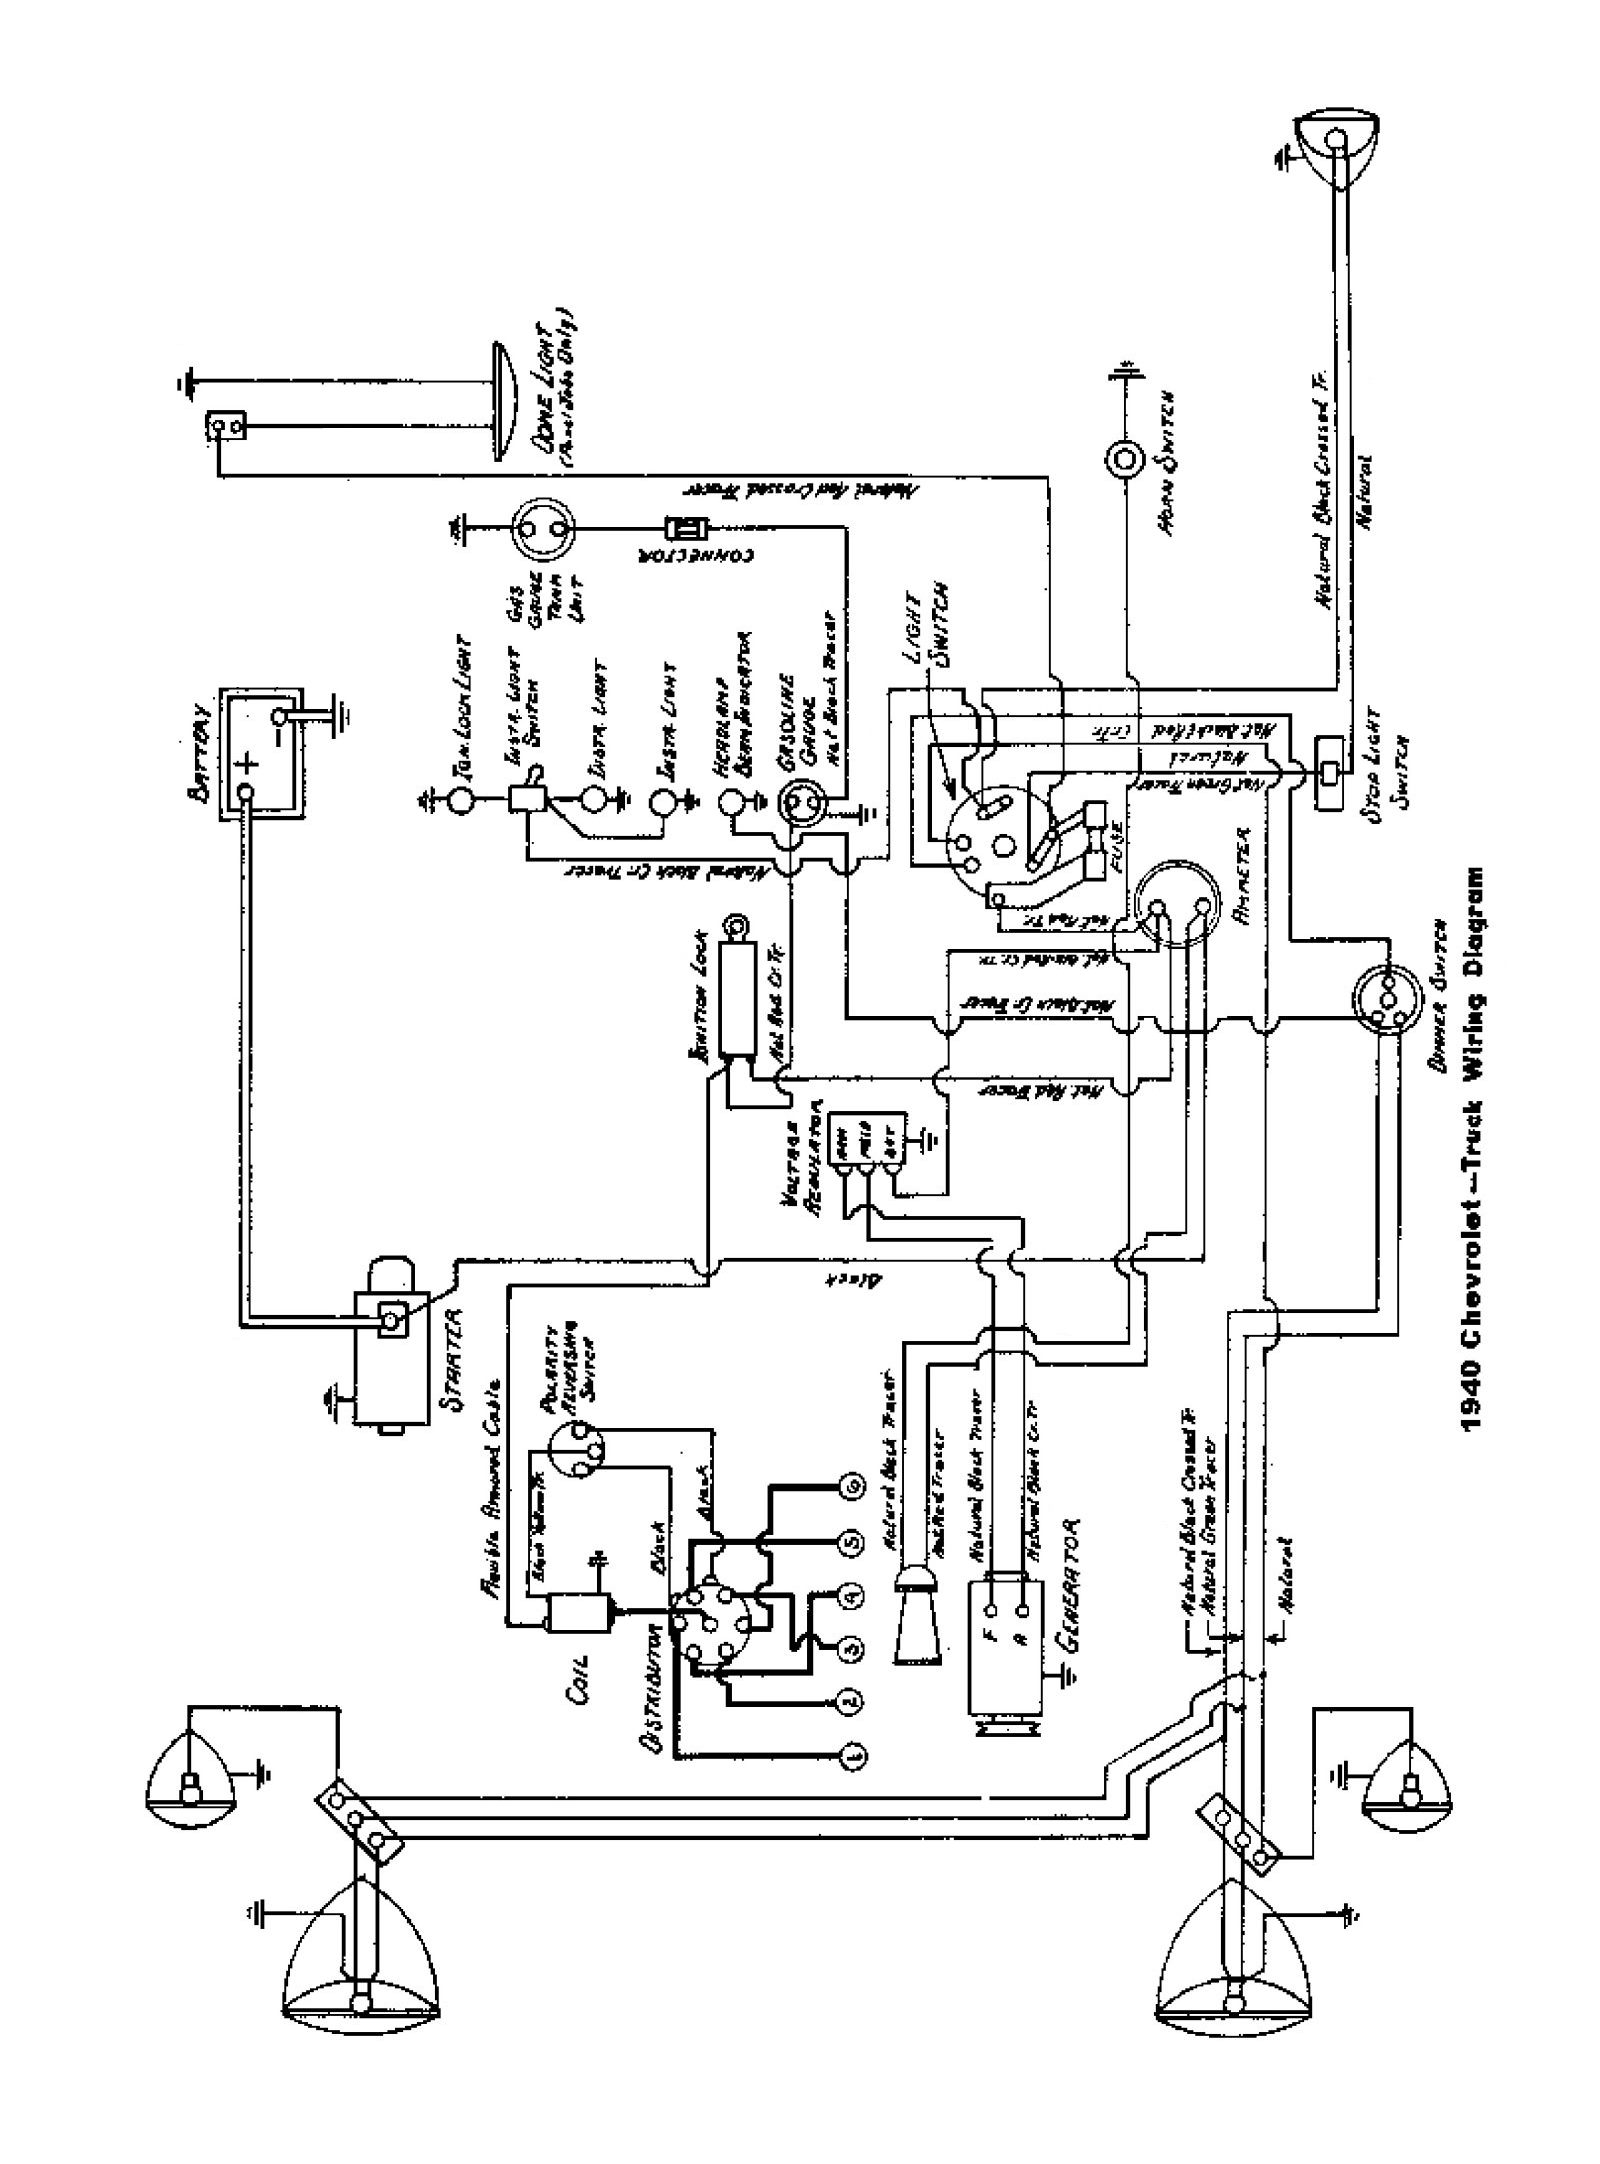 1947 Chevy Headlight Switch Wiring Diagram